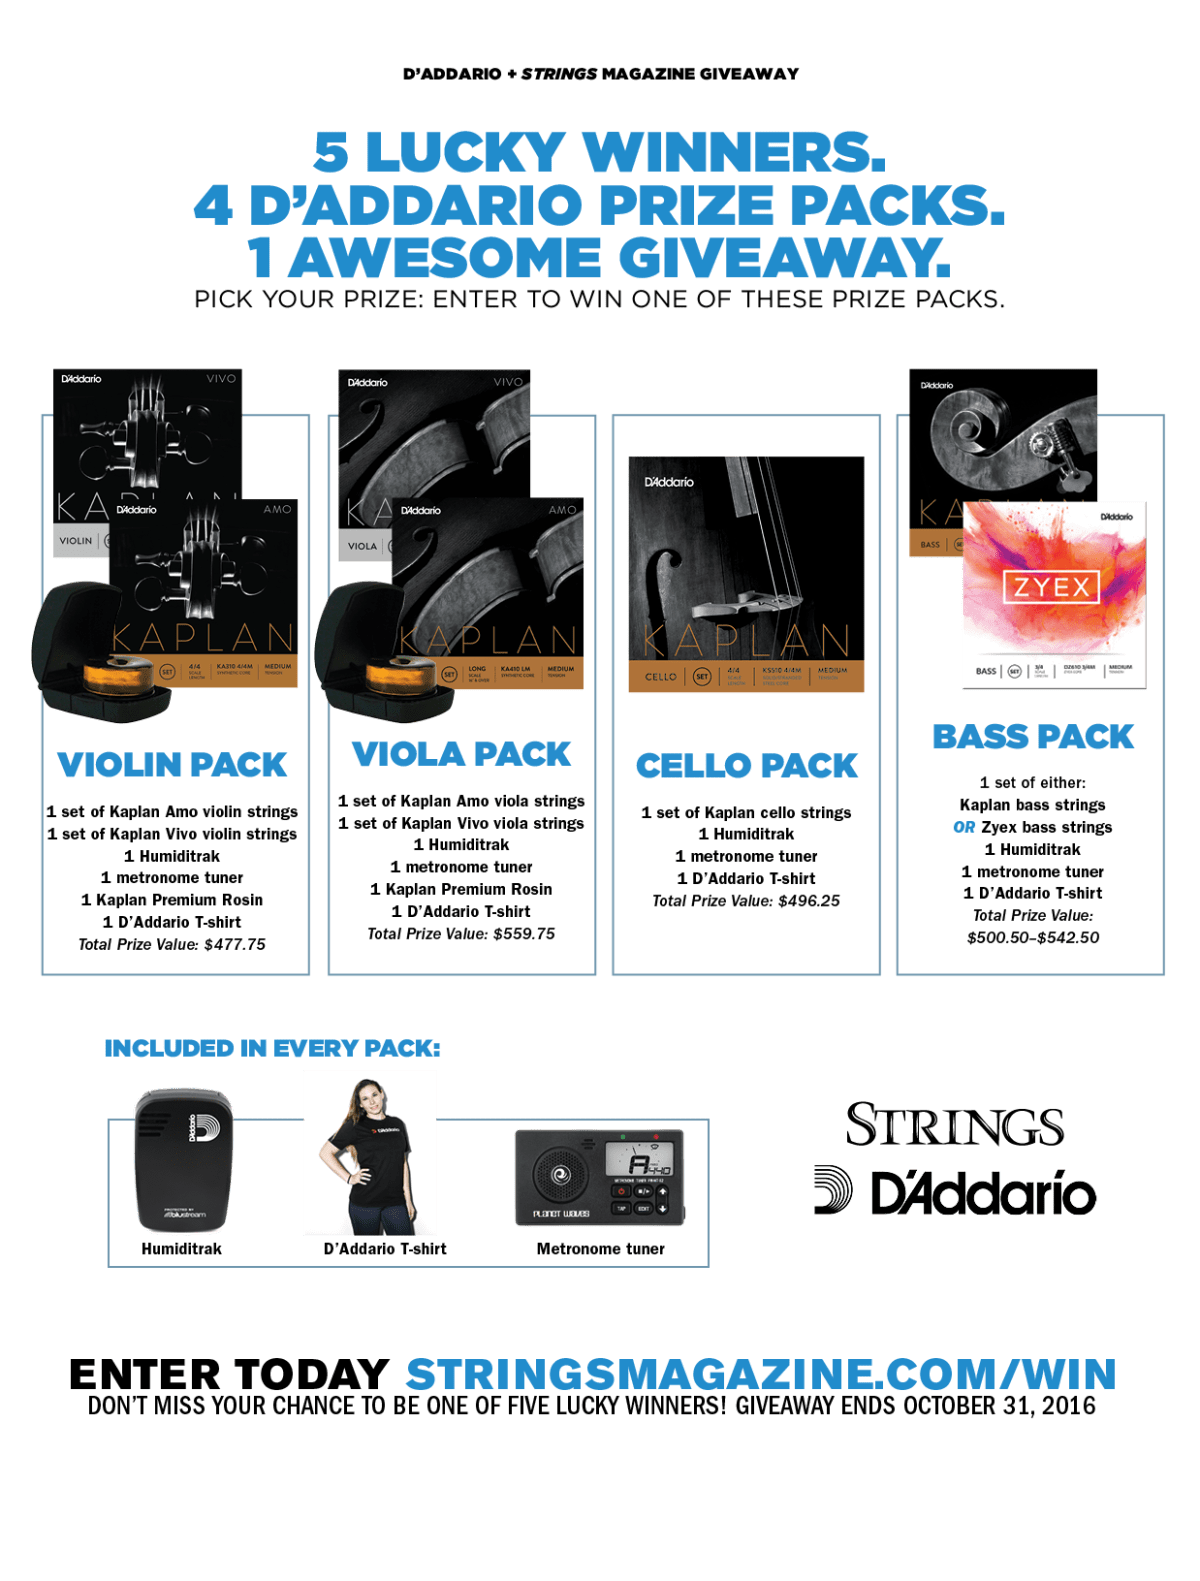 D'Addario Strings Giveaway